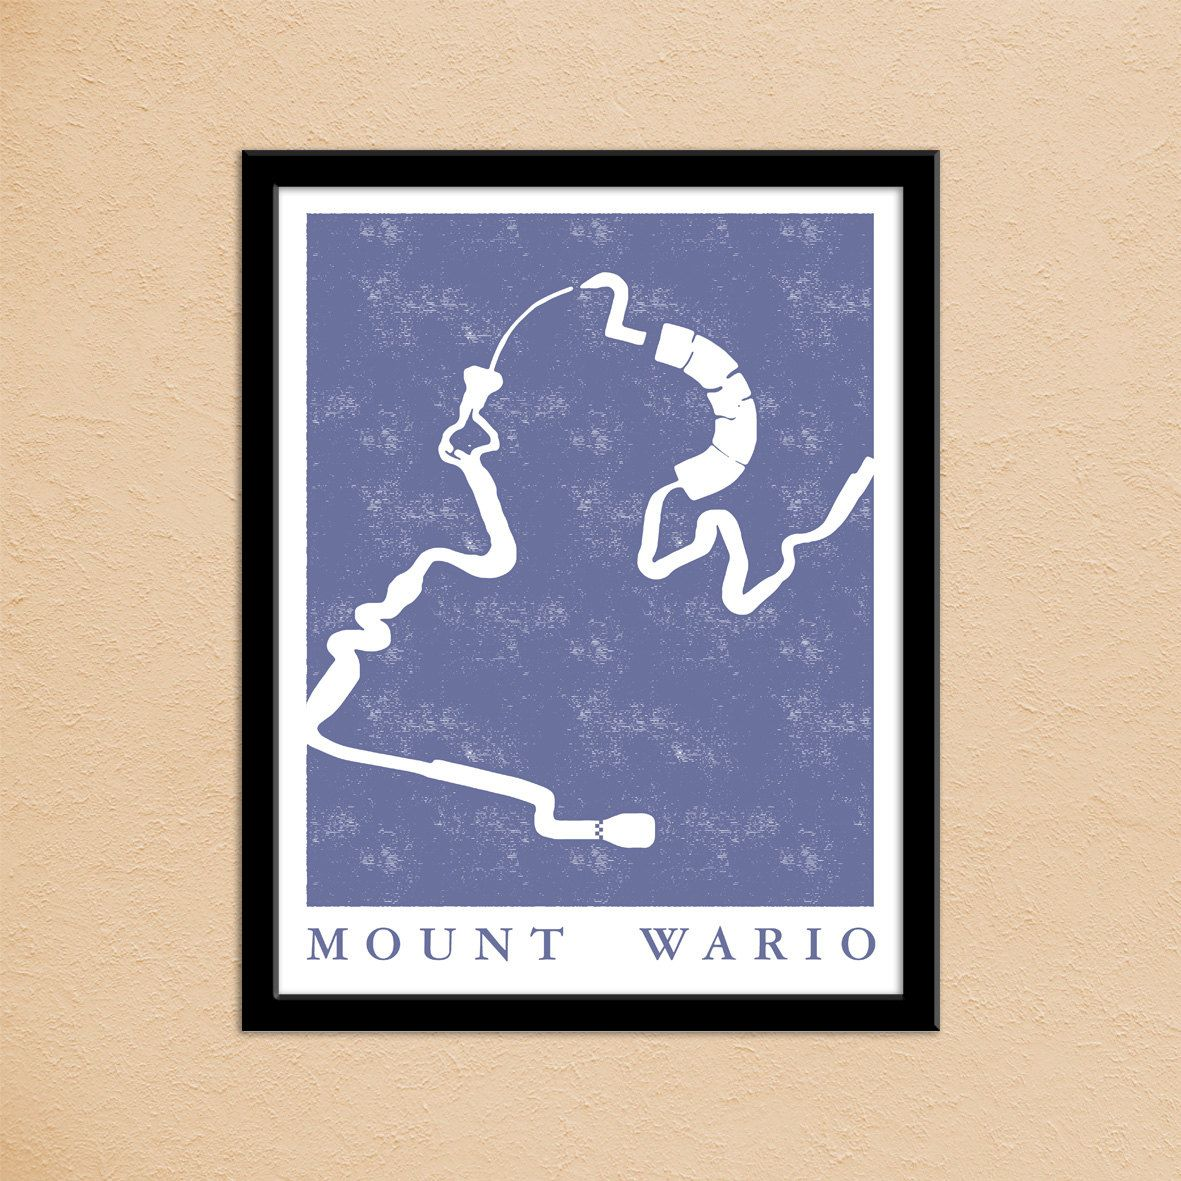 Mario kart 8 mount wario race track map poster super mario gamer pidesignprints on etsy mario kart 8 mount wario race track map poster super mario gumiabroncs Image collections